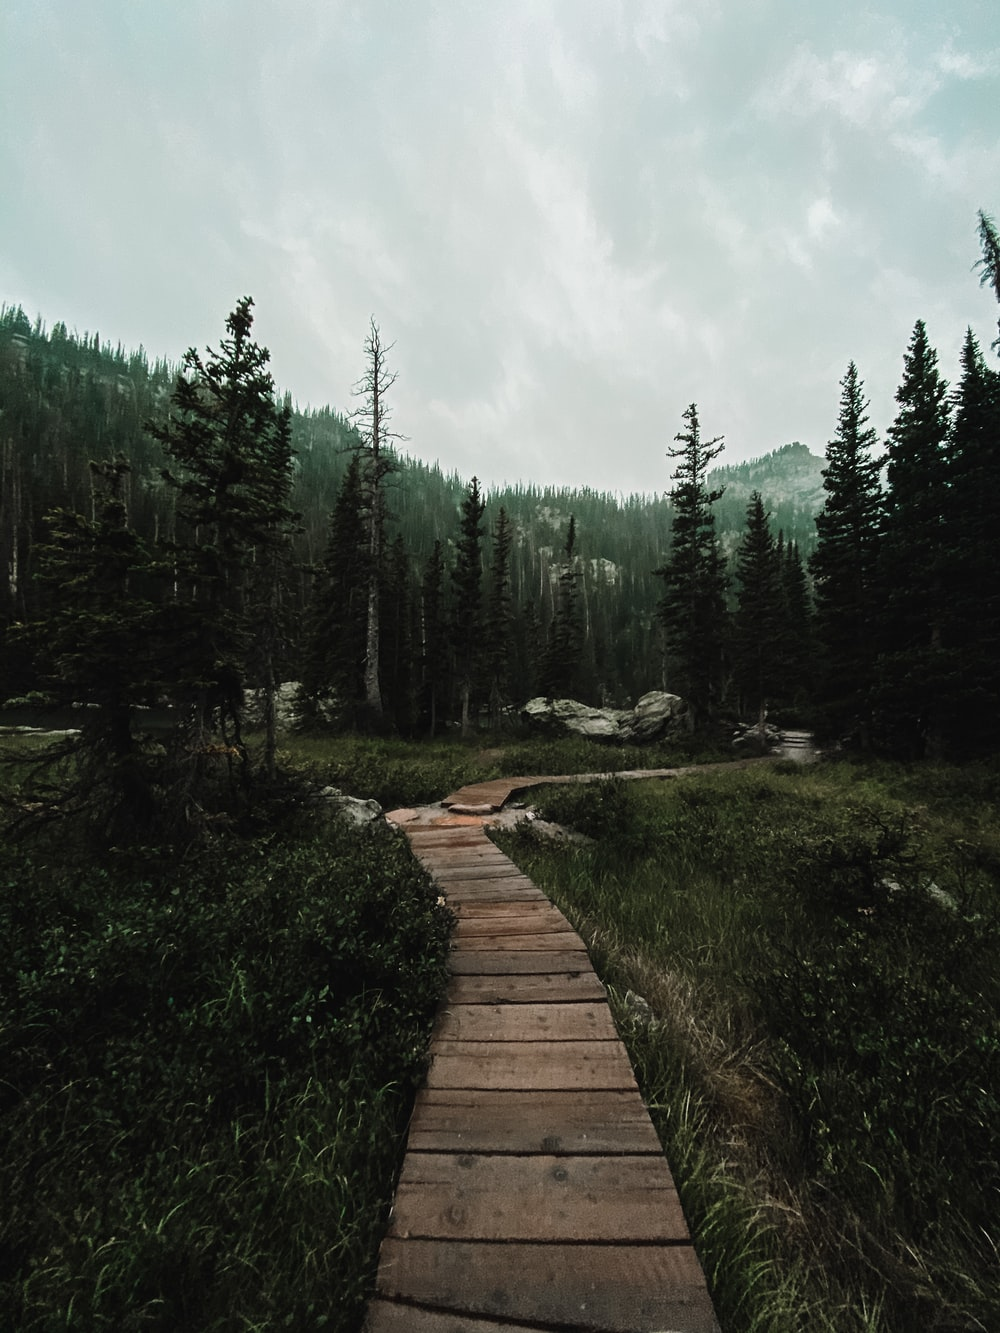 brown wooden pathway between green trees under white clouds during daytime